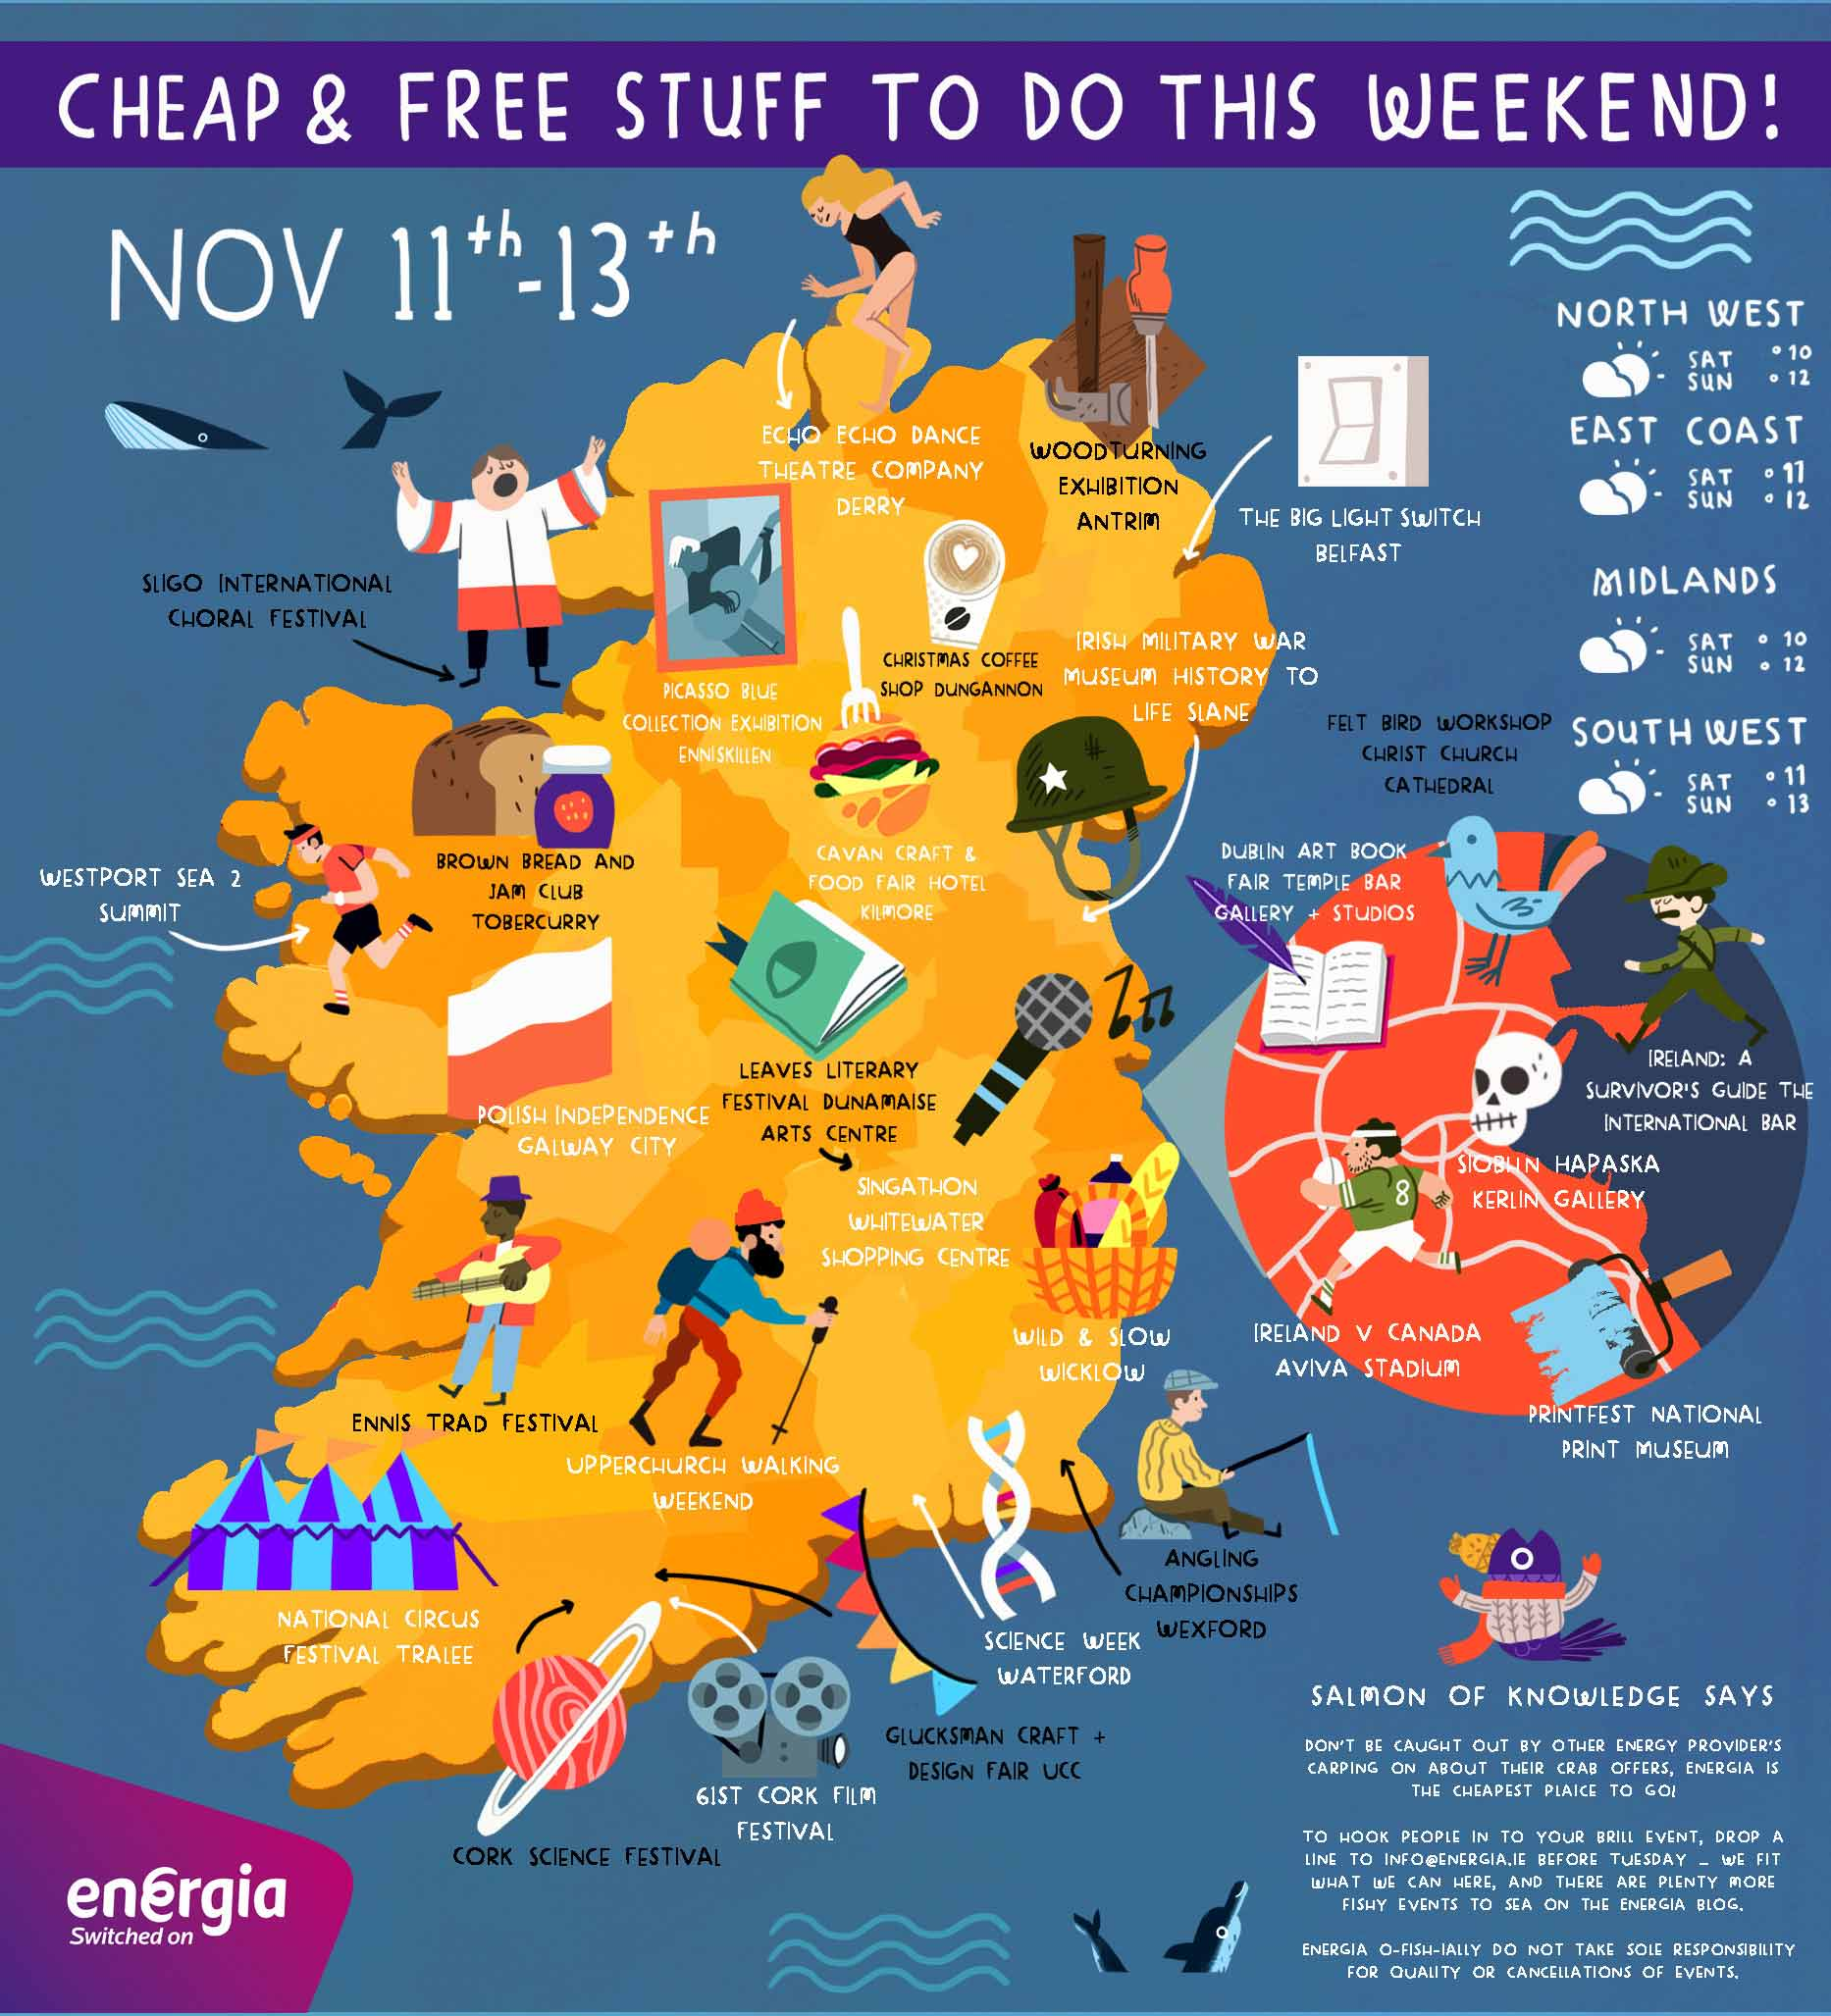 Cheap & Free stuff to do this weekend 11th - 13th November